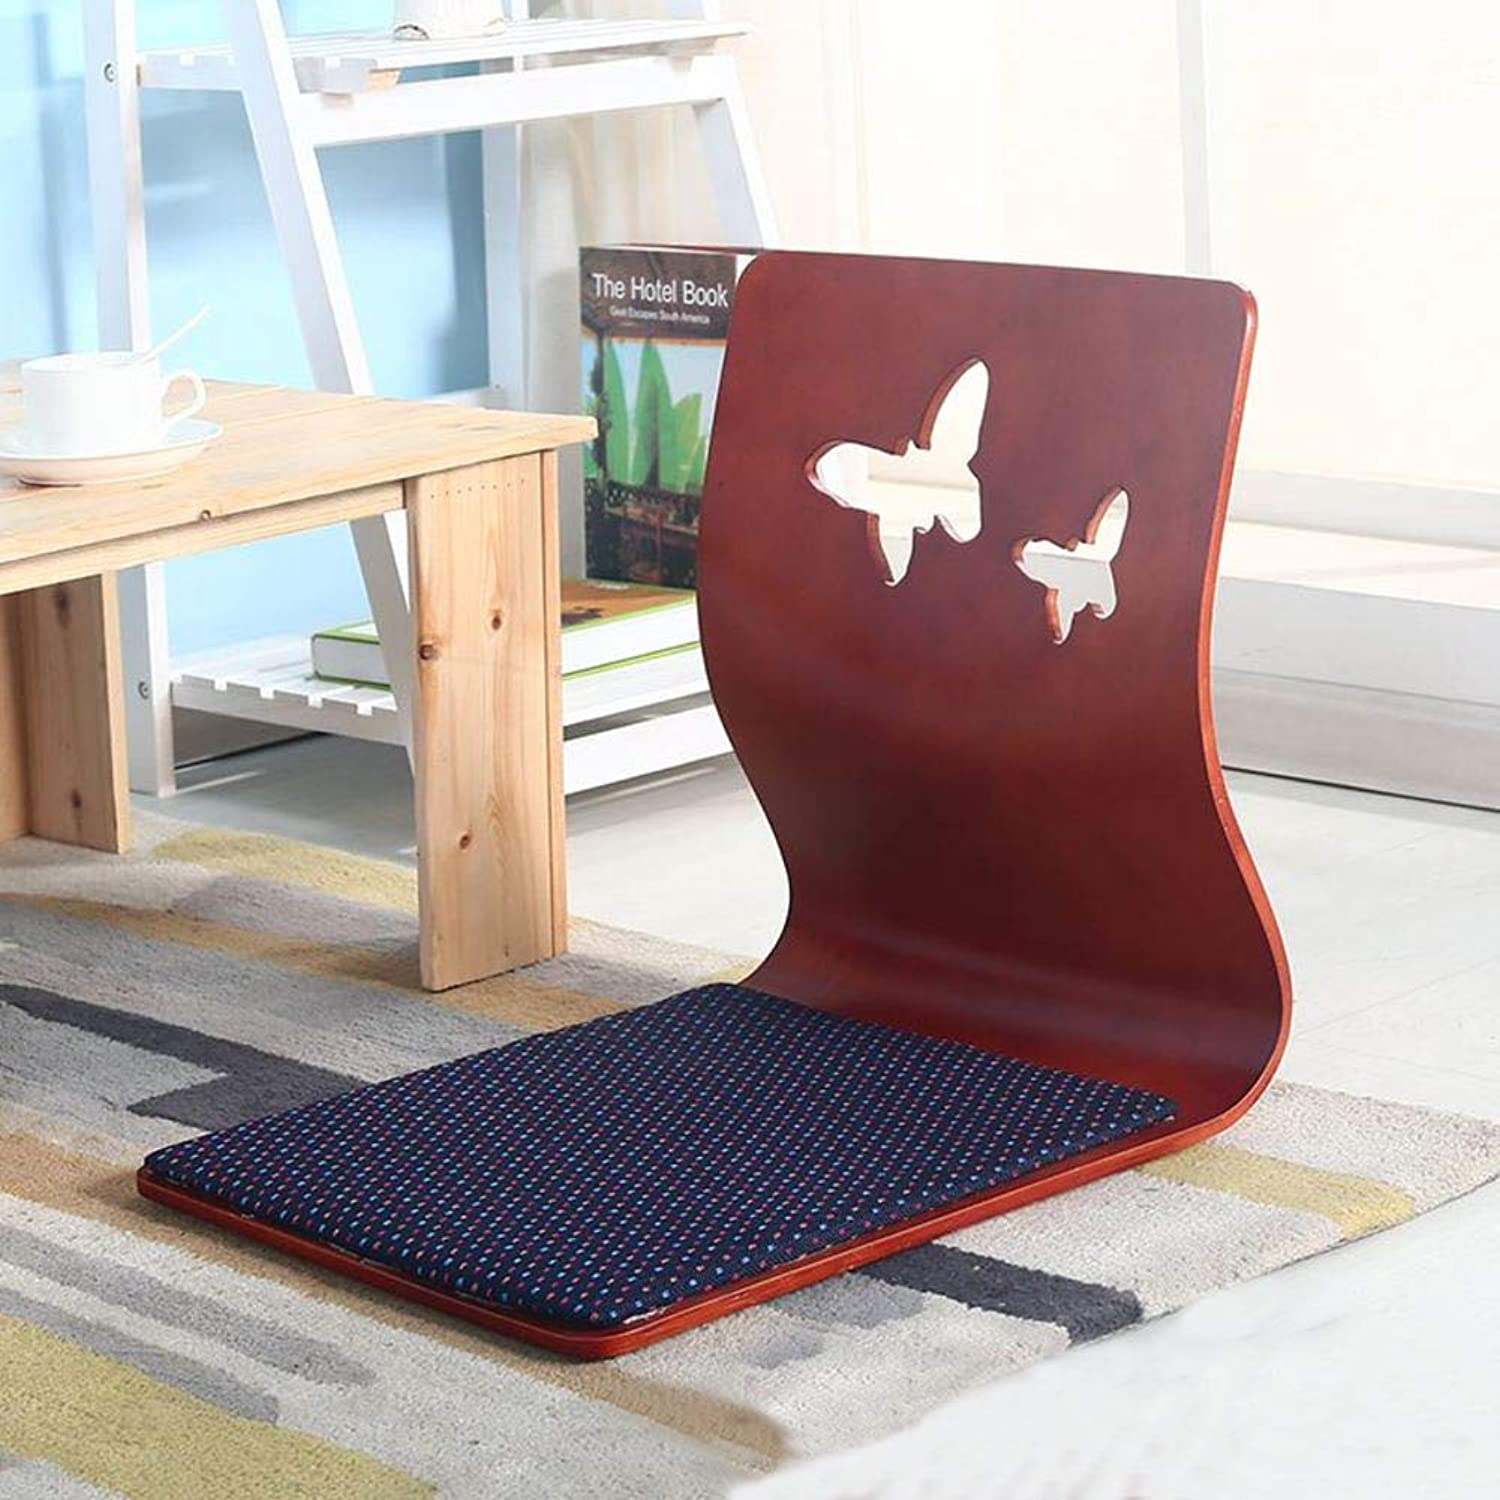 Foldable Floor Chair,Padded Floor Chair with Back Support for Video-Gaming Reading-A 46x37cm(18x15inch)